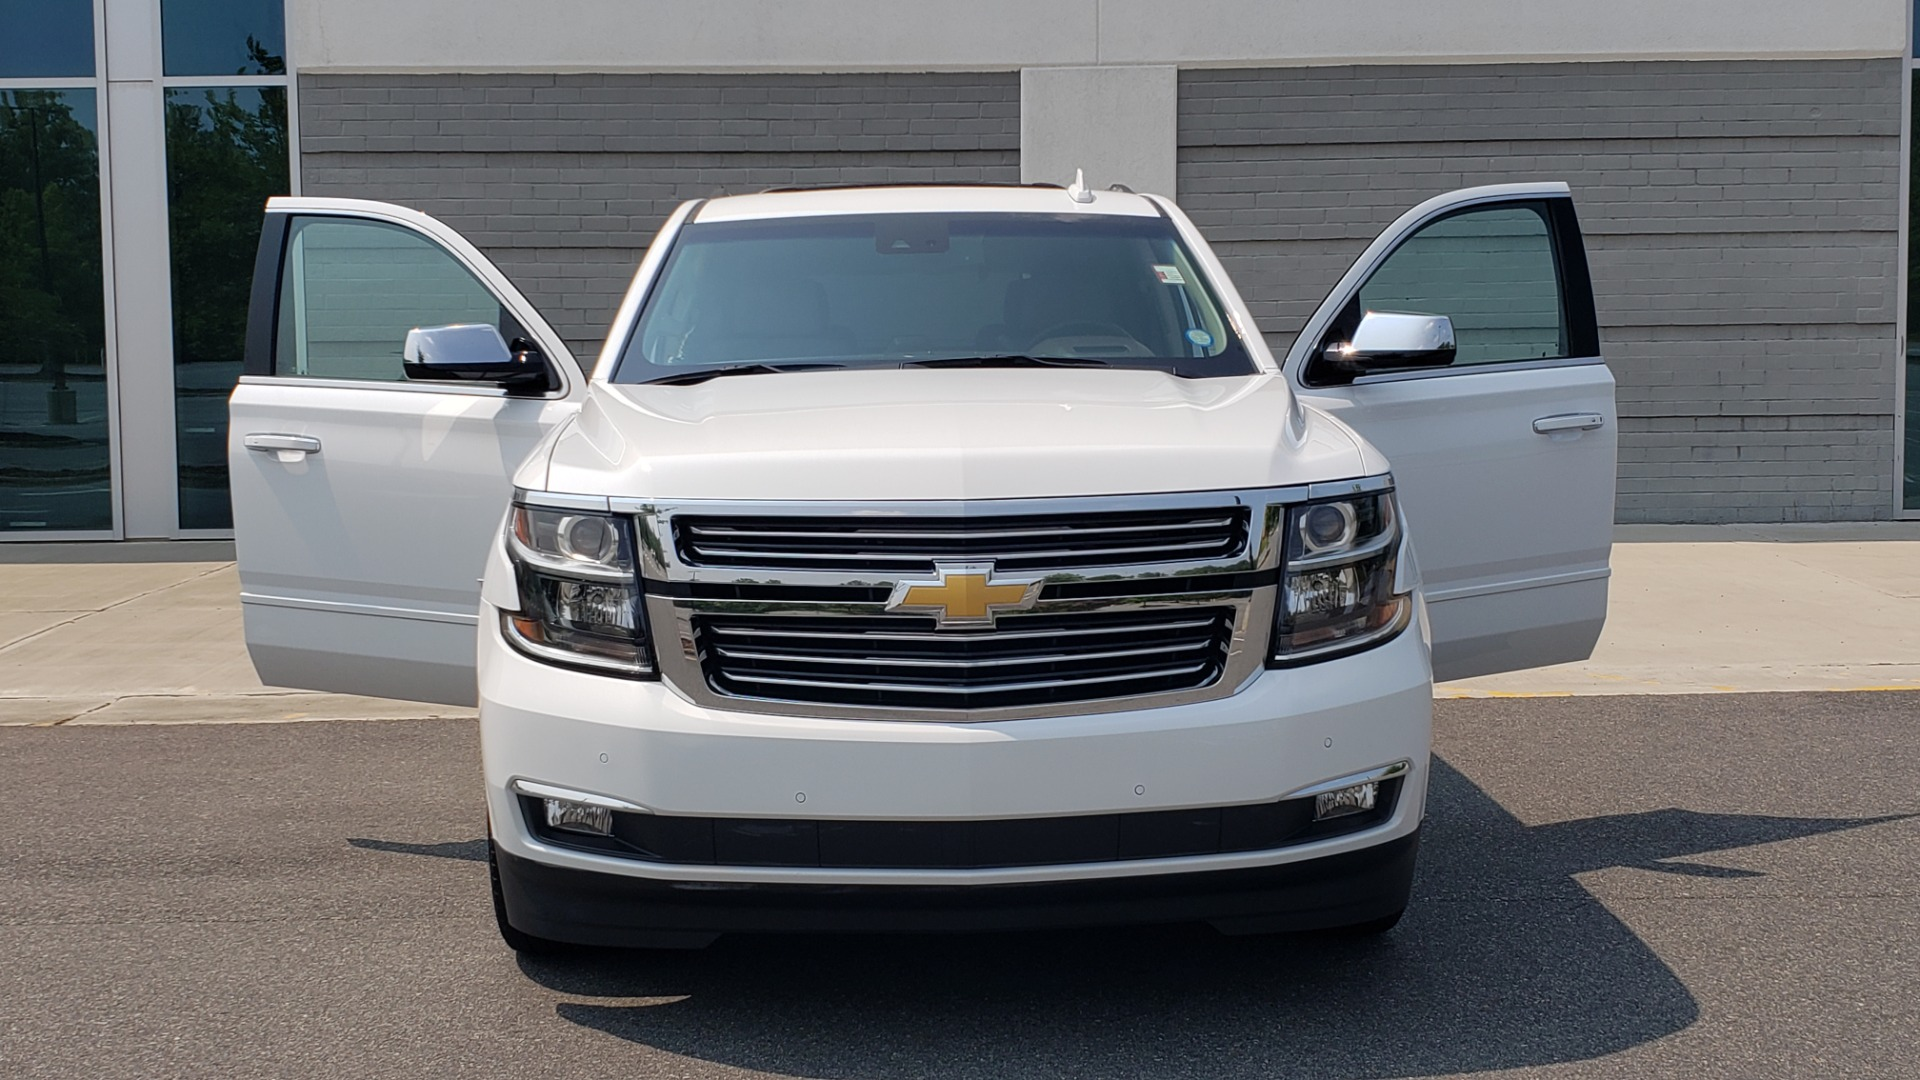 Used 2018 Chevrolet TAHOE PREMIER 4WD / NAV / SUNROOF / BOSE / 3-ROW / HUD / REARVIEW for sale $63,995 at Formula Imports in Charlotte NC 28227 25